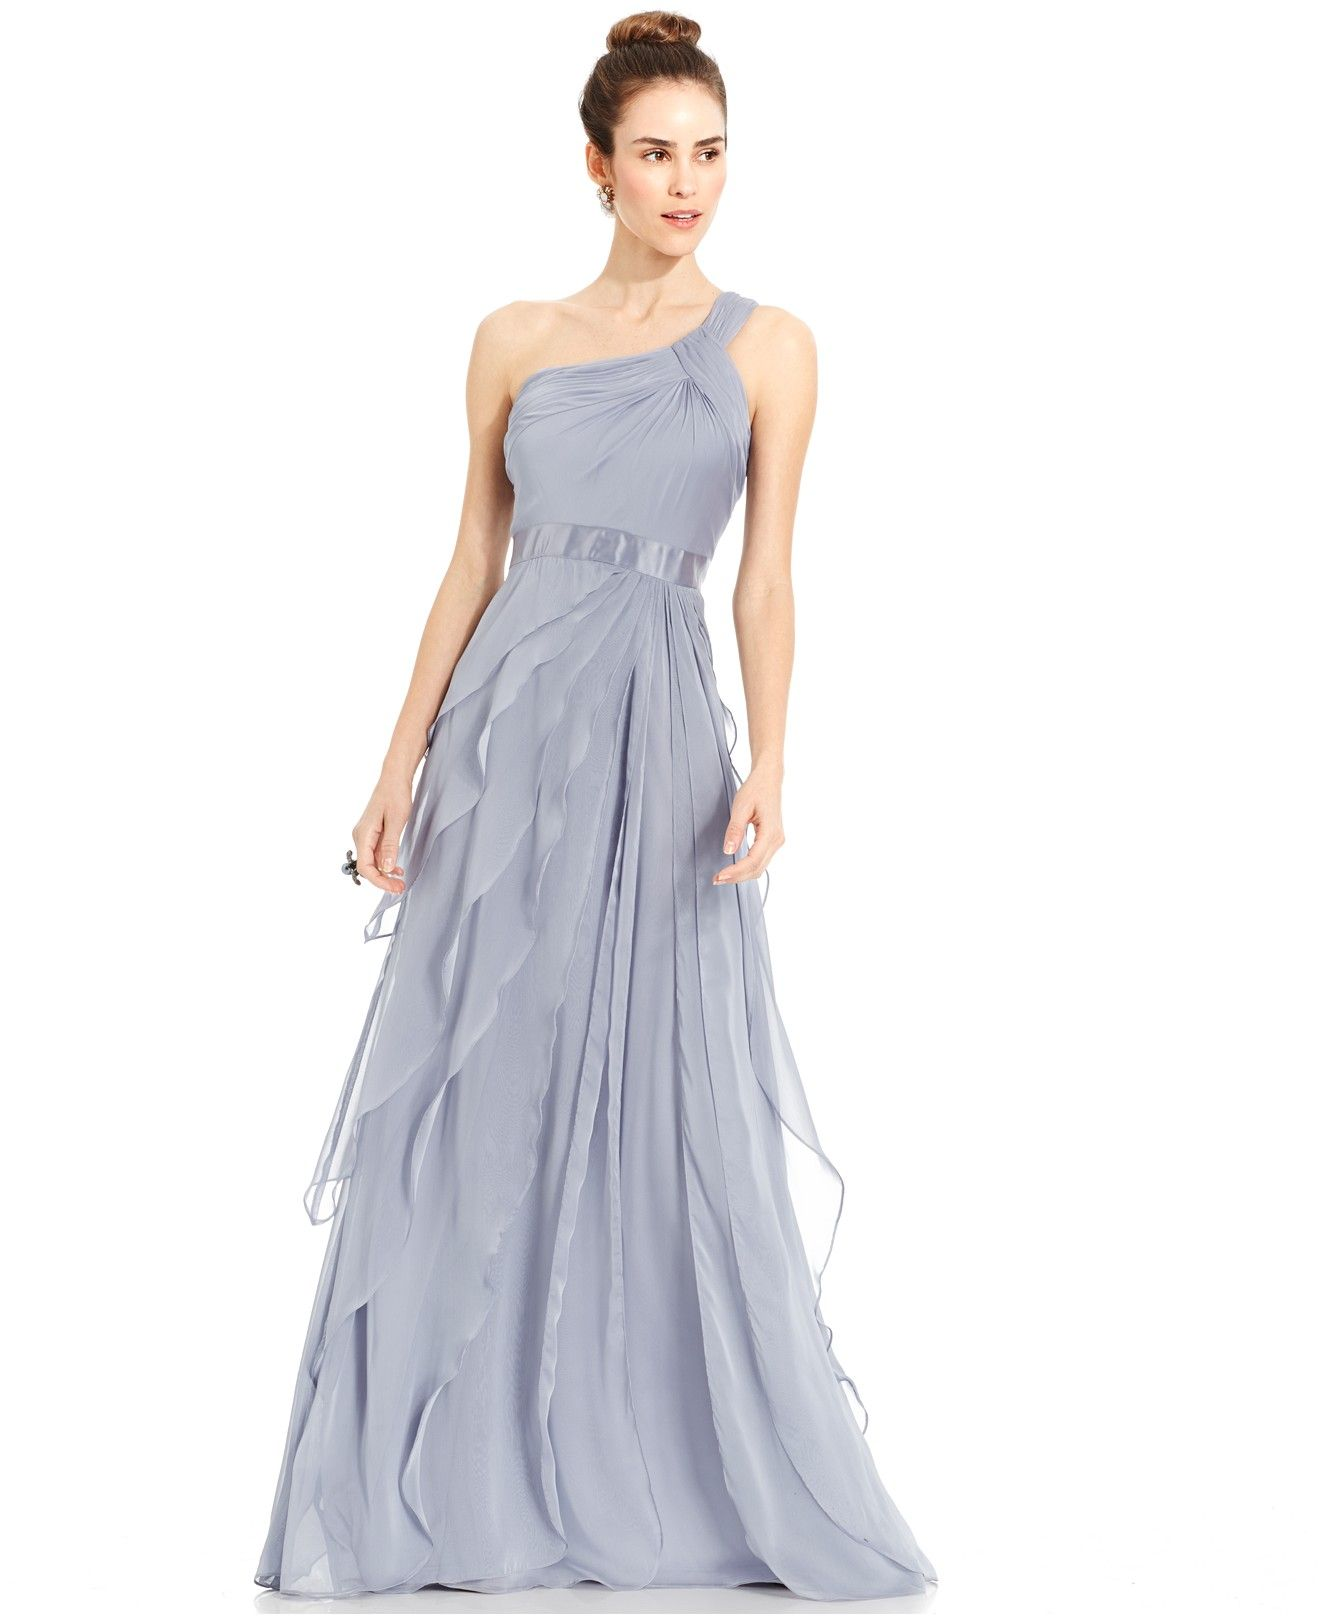 ddf91f0ece5 Bridesmaids Adrianna Papell One-Shoulder Tiered Chiffon Gown - Dresses -  Women - Macy s